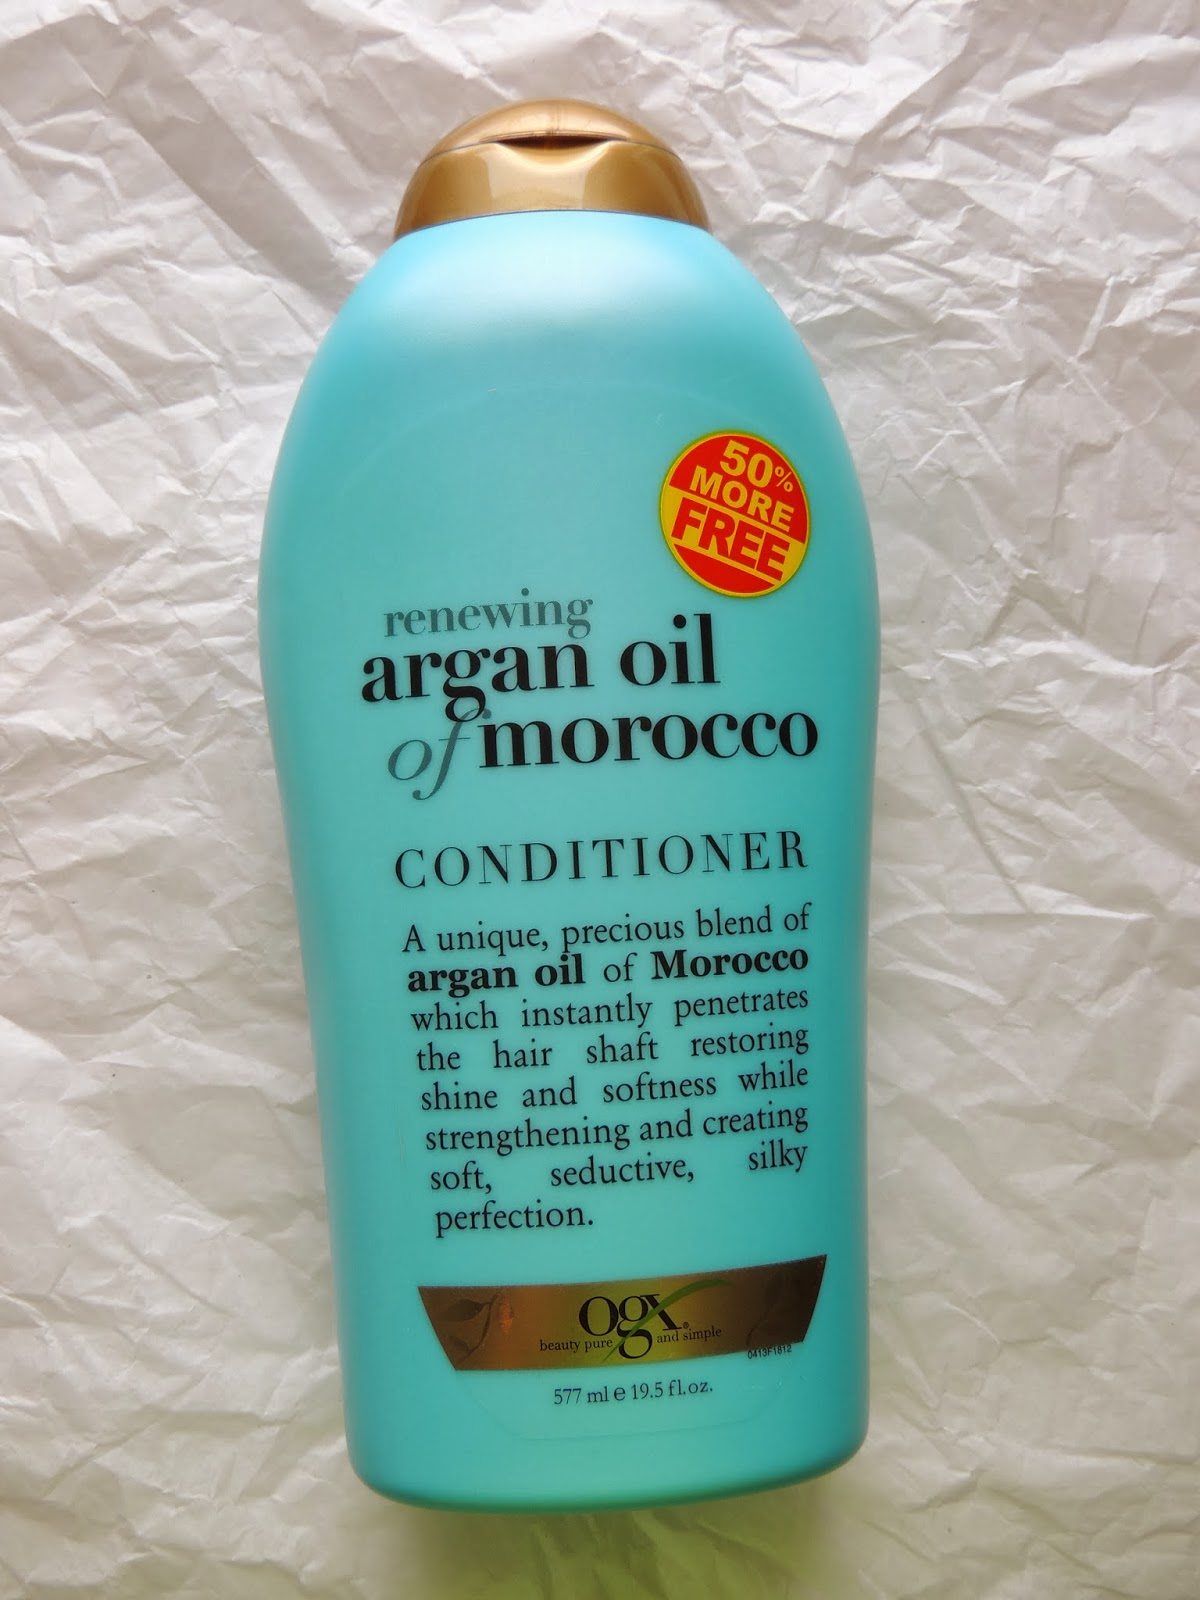 Brittany's Secret: REVIEW: OGX Renewing Argan Oil of